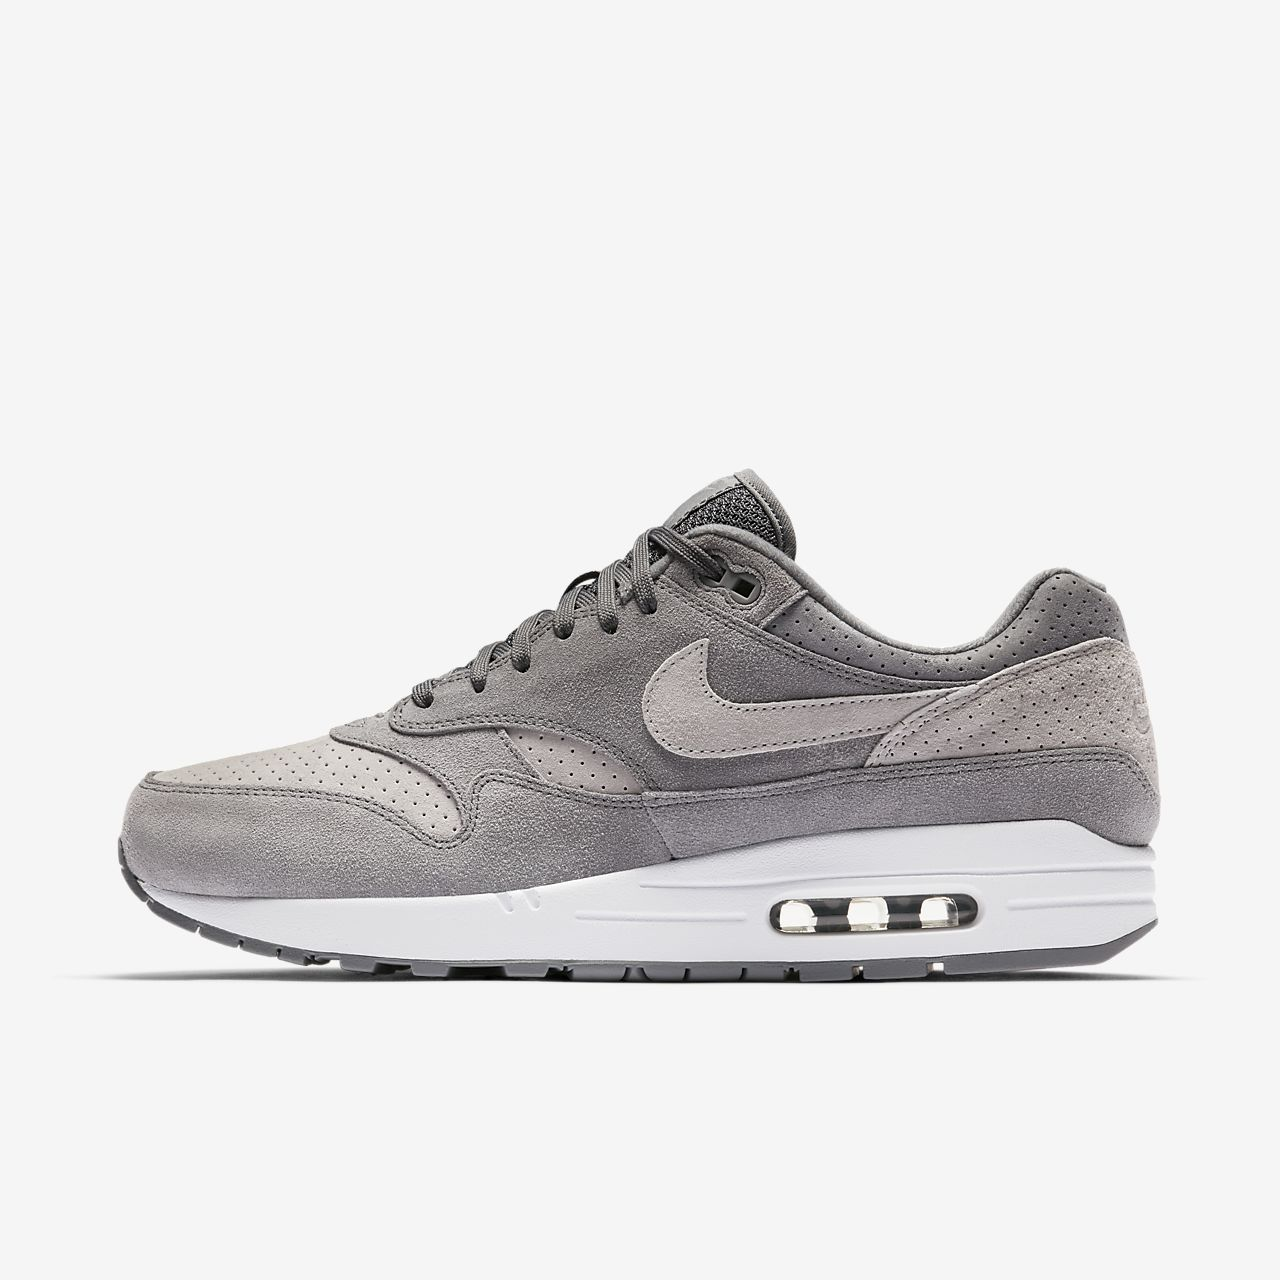 nike air max 1 premium anthracite pro purple nz